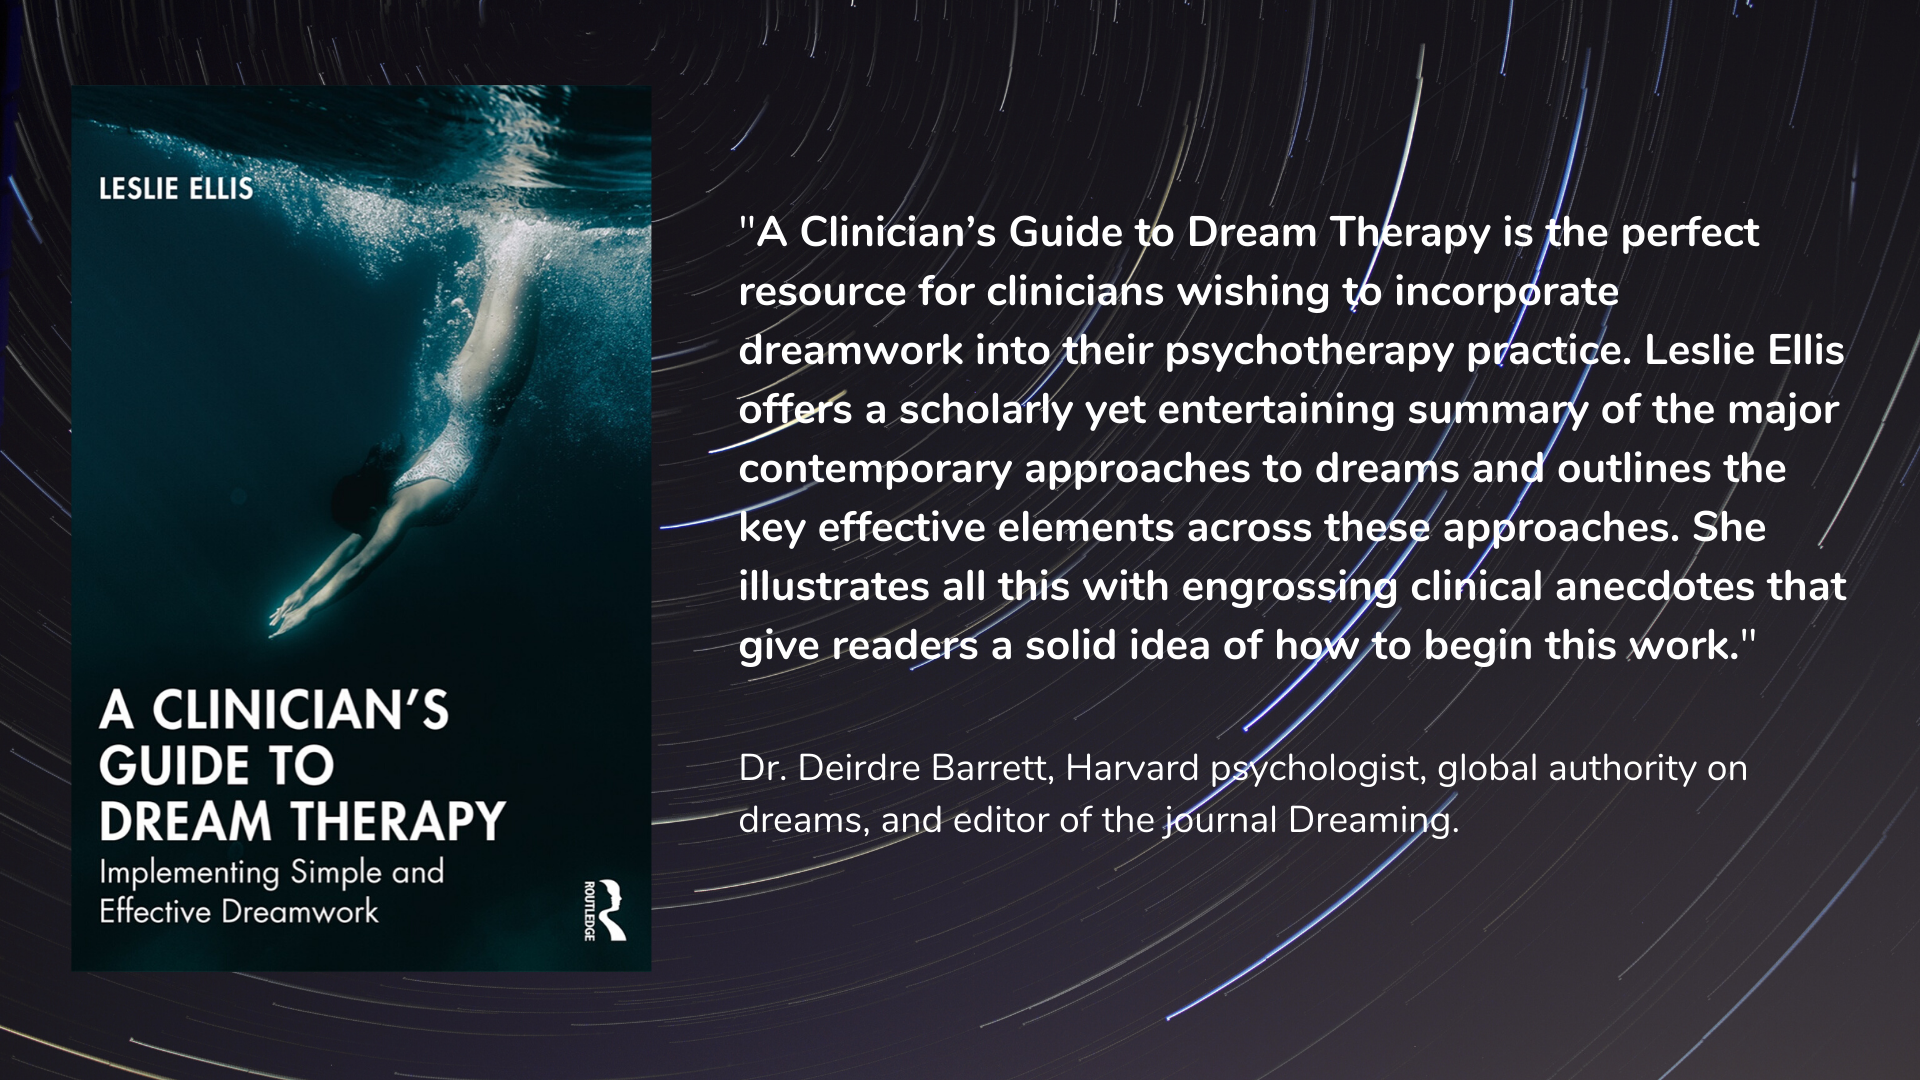 A Clinician's Guide to Dream Therapy by Dr. Leslie Ellis